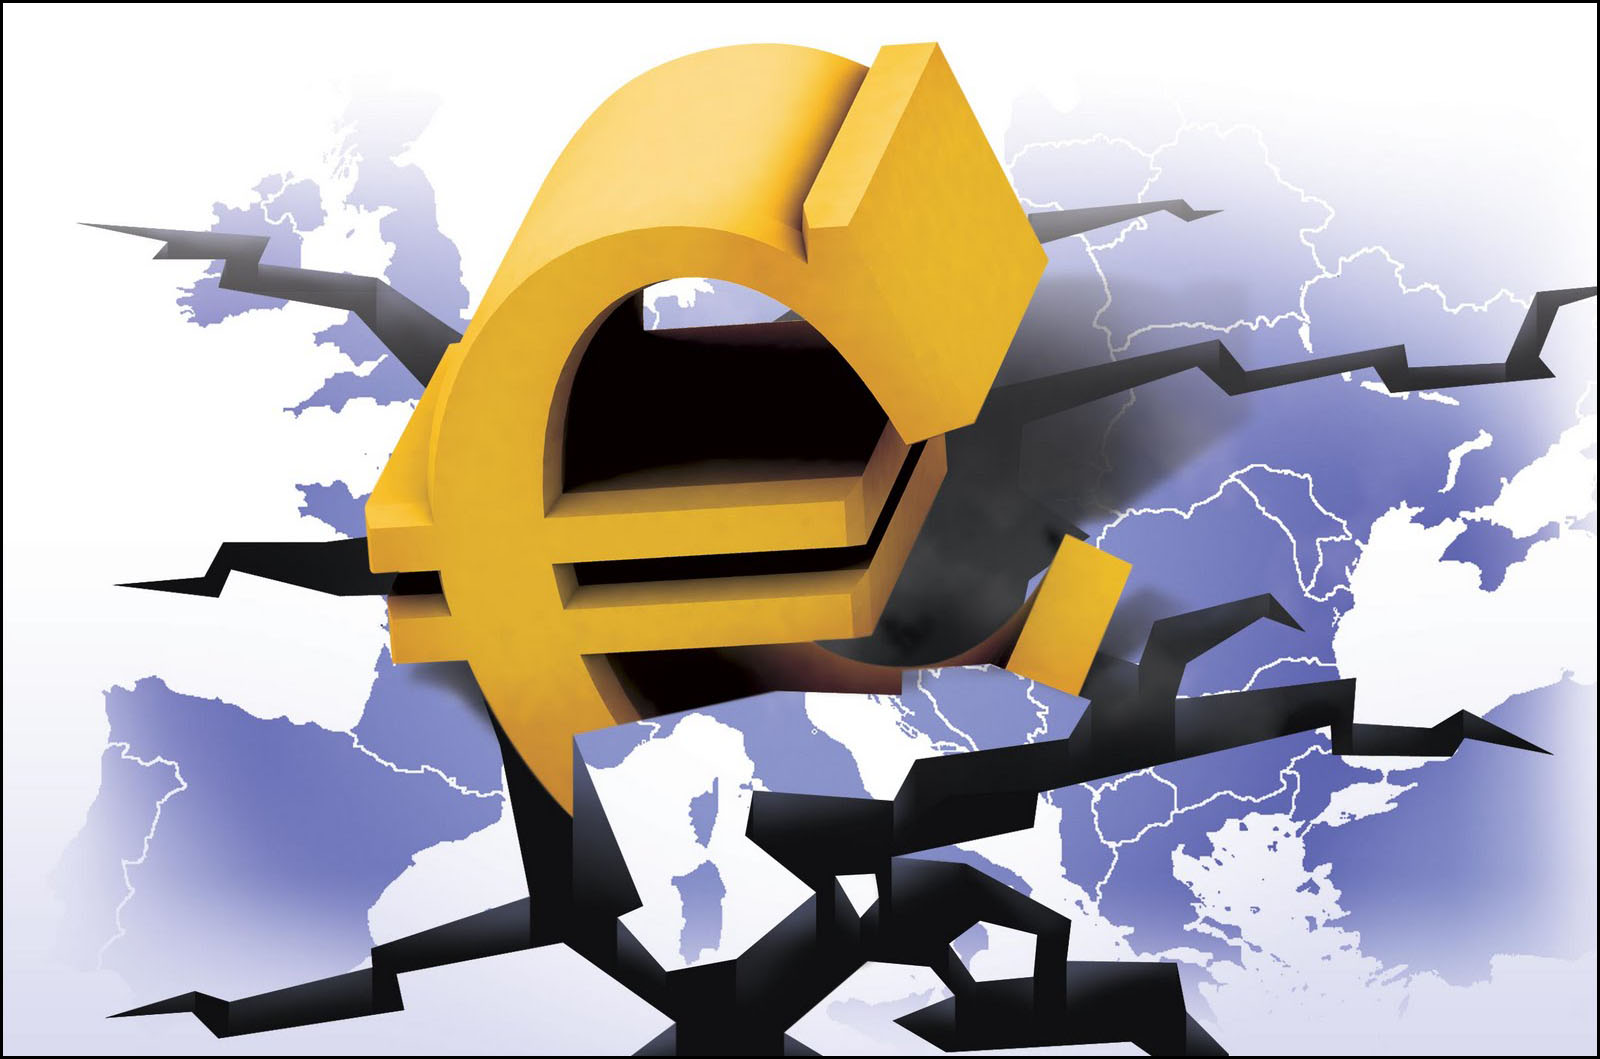 europe economic crisis See how europe's debt crisis began and evolved 1999 the euro is introduced with 11 founding countries earlier in the decade, in 1992, the european economic community was officially formed with the signing of the maastricht treaty the euro was introduced and adopted by 11 countries in 1999.